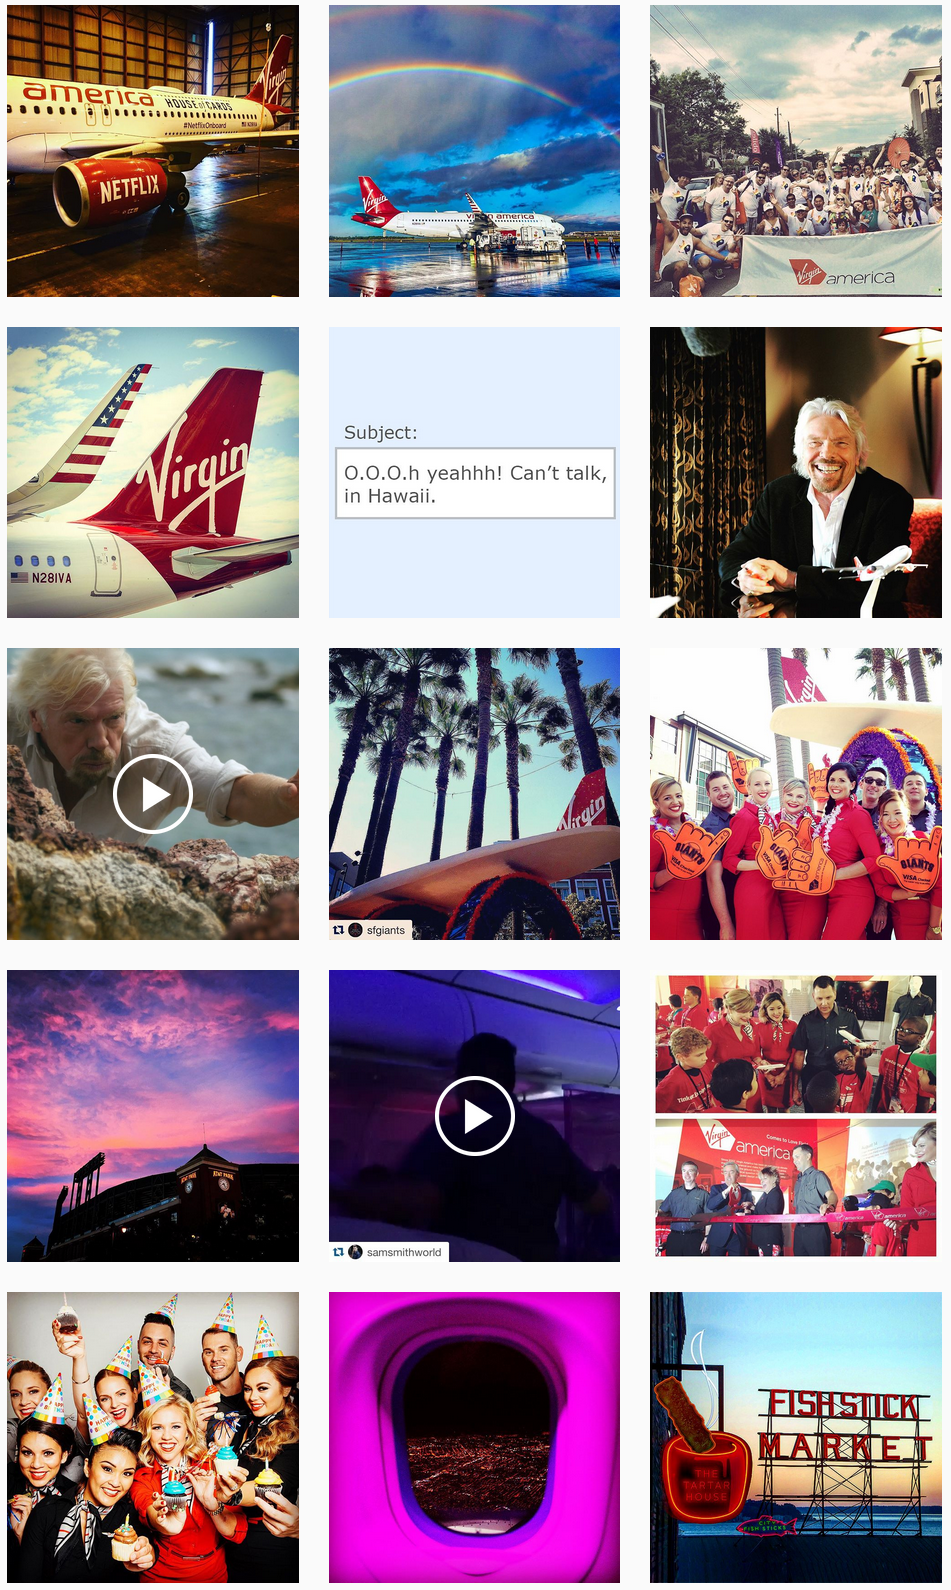 Virgin America Social Posts